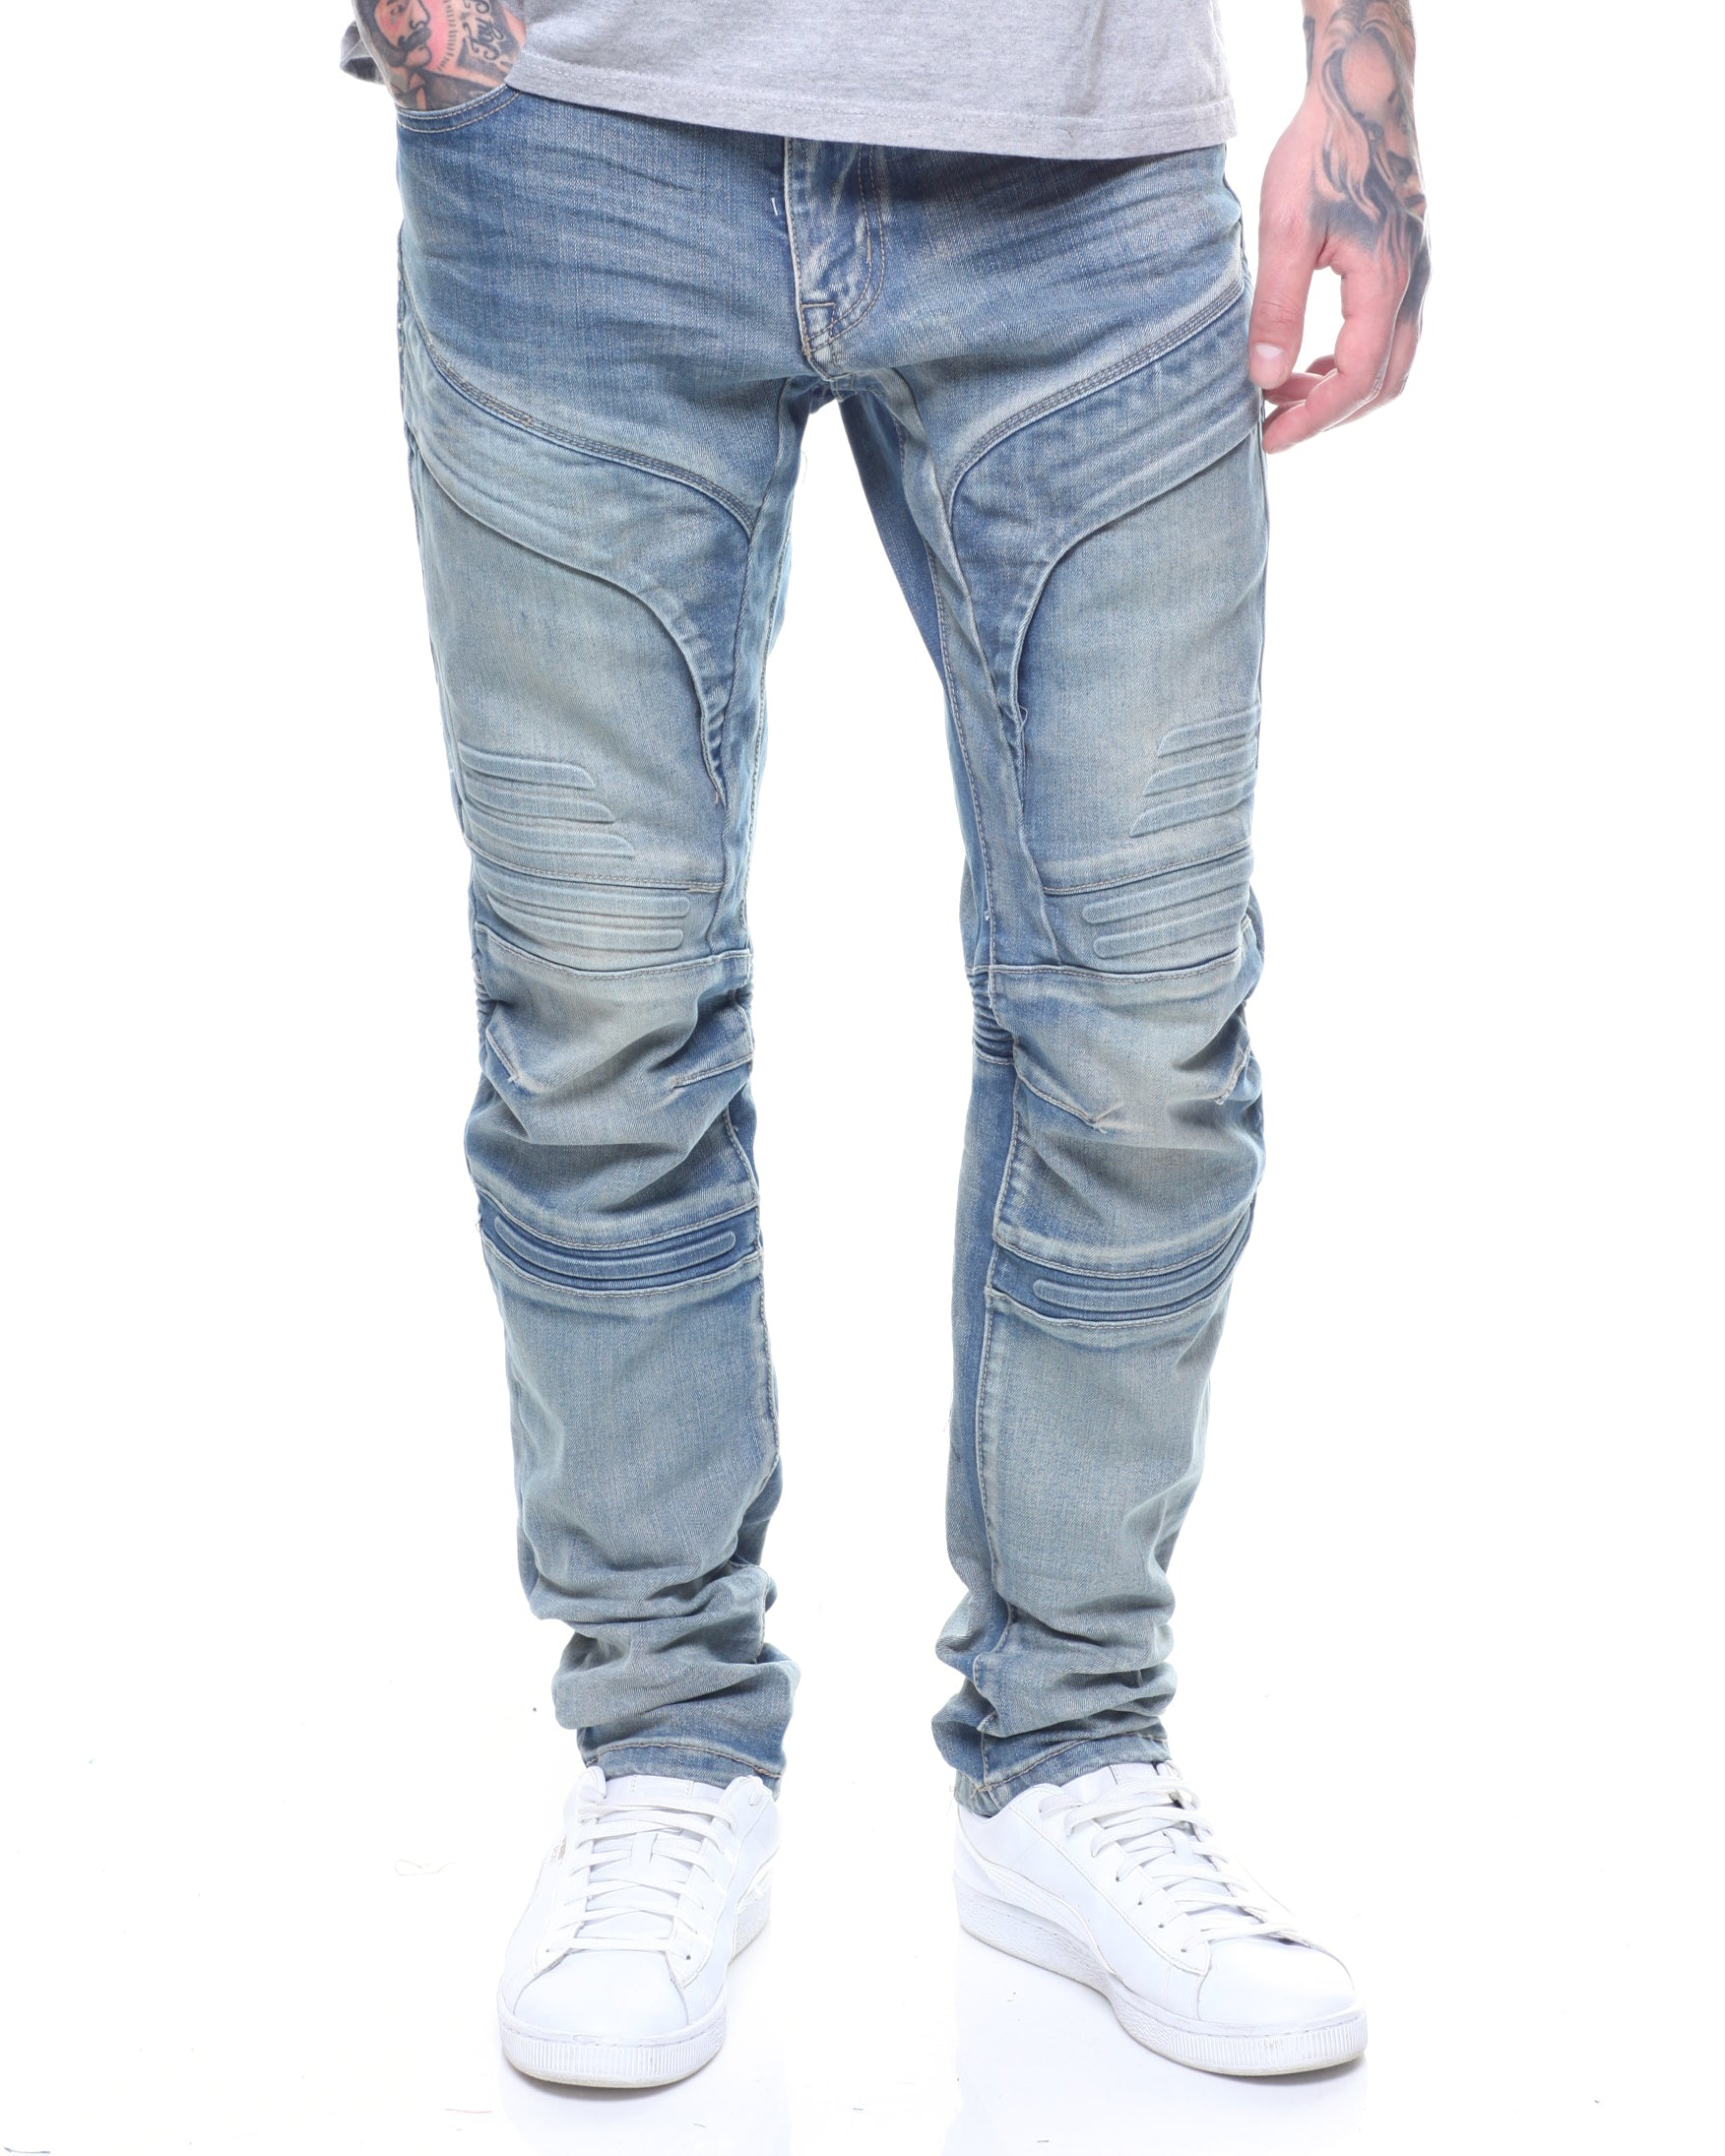 Smoke Rise Gel Injected Denim